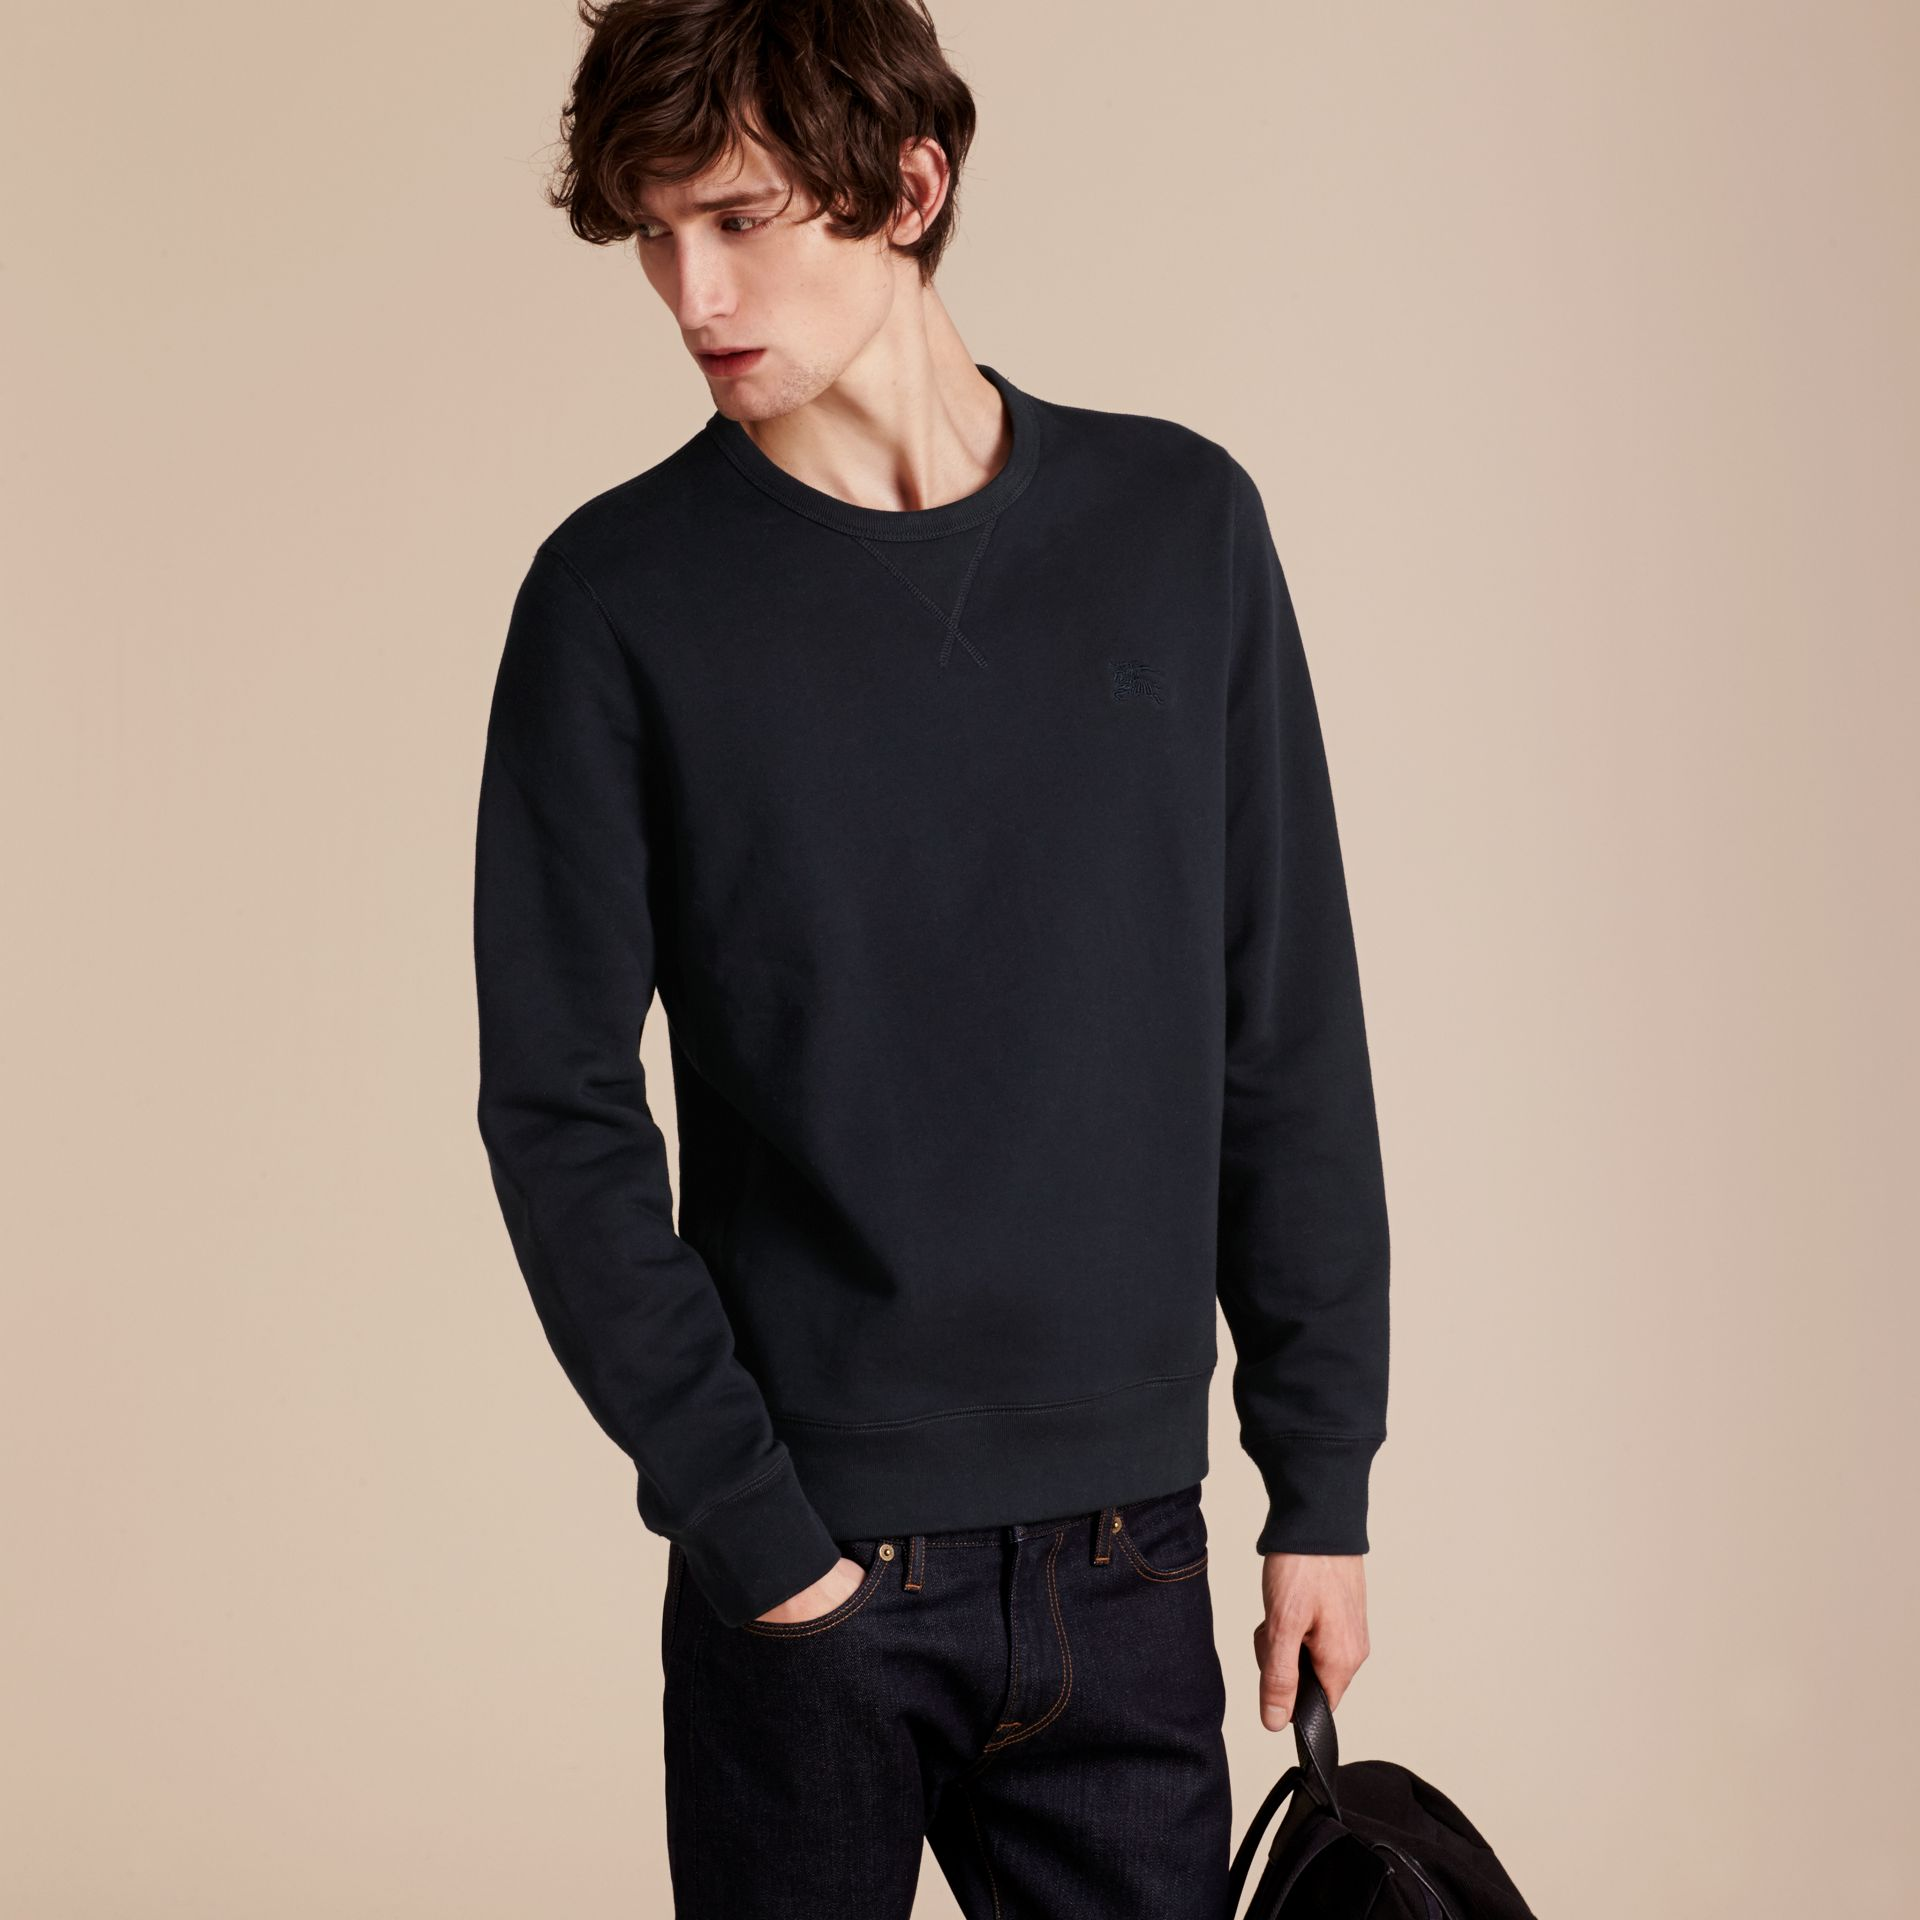 Navy Cotton Blend Jersey Sweatshirt Navy - gallery image 6